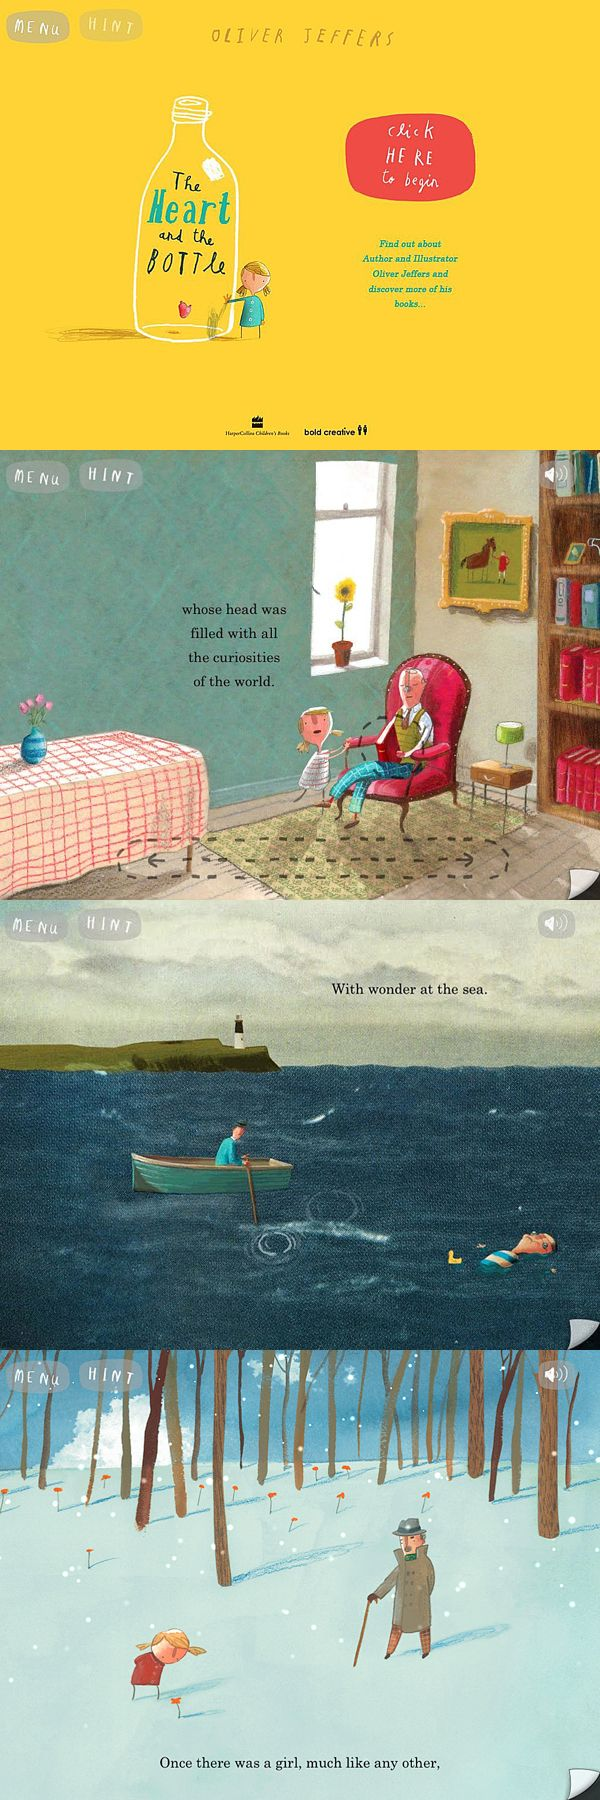 'The Heart and the Bottle' illustrations by Oliver Jeffers. - Oliver Jeffers layout and design of pages is interesting. How does the layout allow for interaction of words and images?